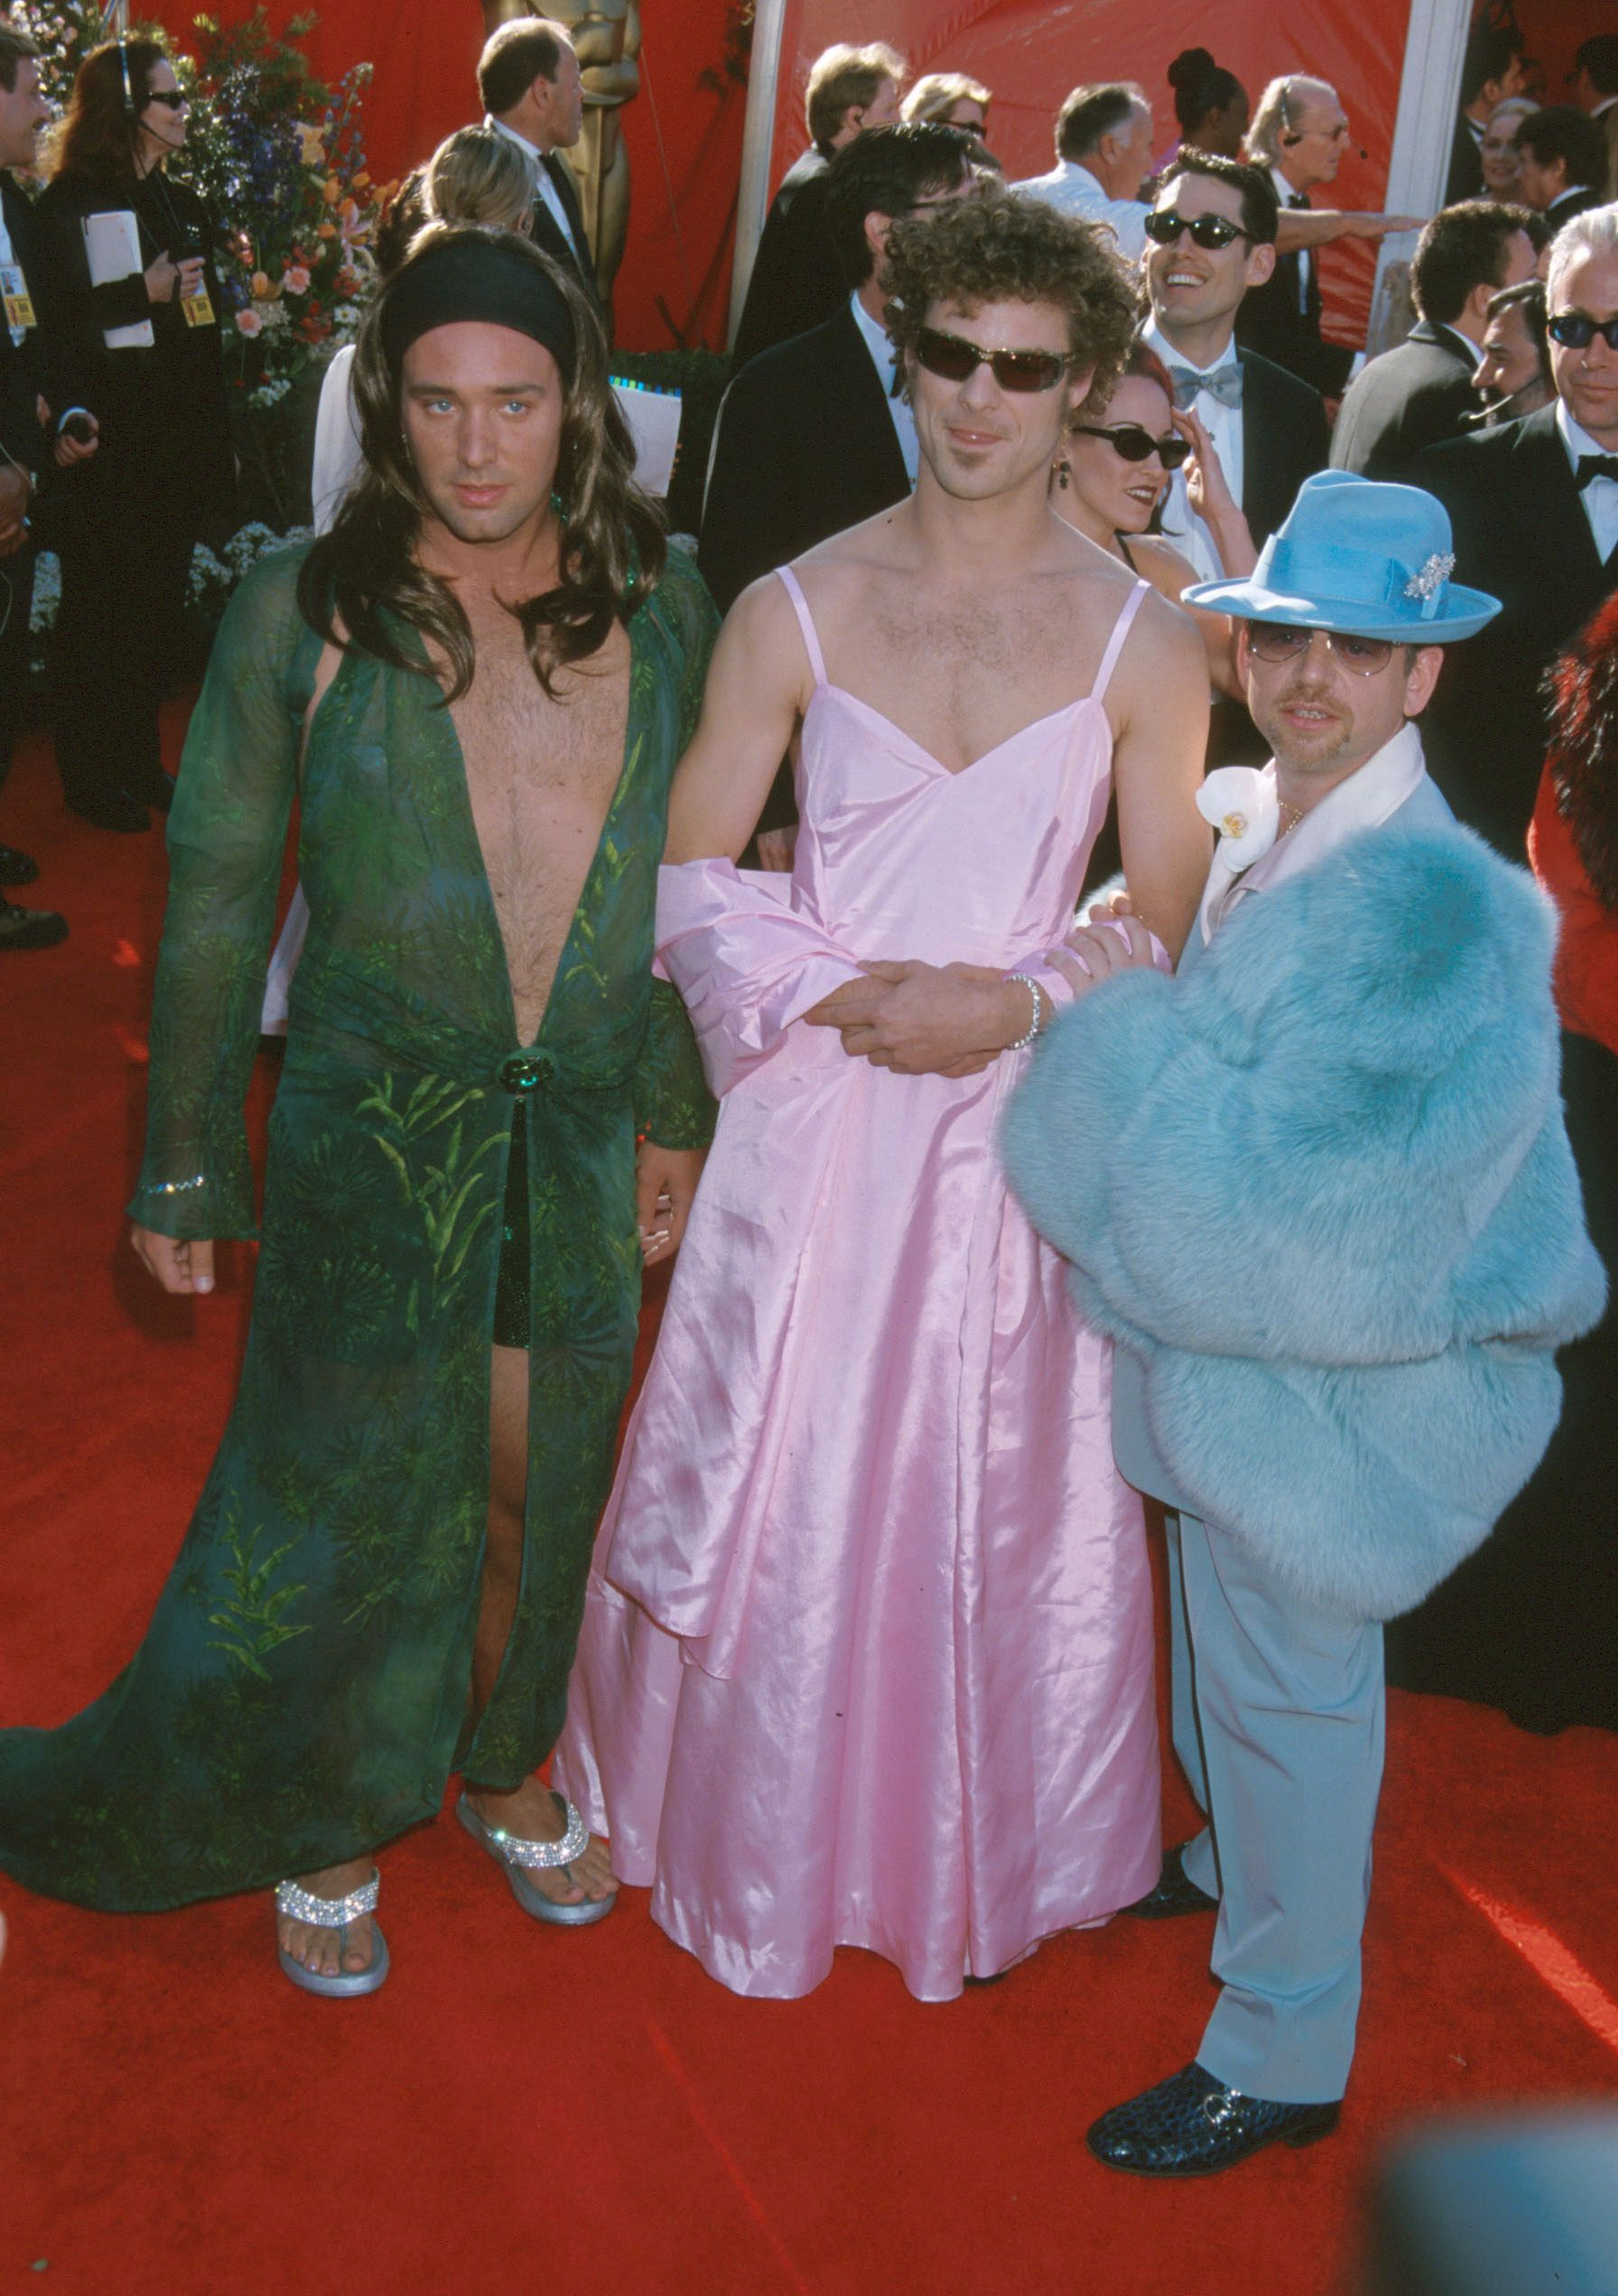 2000: When the 'South Park' creators mimicked iconic red carpet looks while high South Parker creators Trey Parker, Matt Stone, and Marc Shaiman showed up to the 2000 Oscars red carpet in... women's clothing , awkwardly mimicking Jennifer Lopez and Gwyneth Paltrow. They later admitted they were on acid at the time.